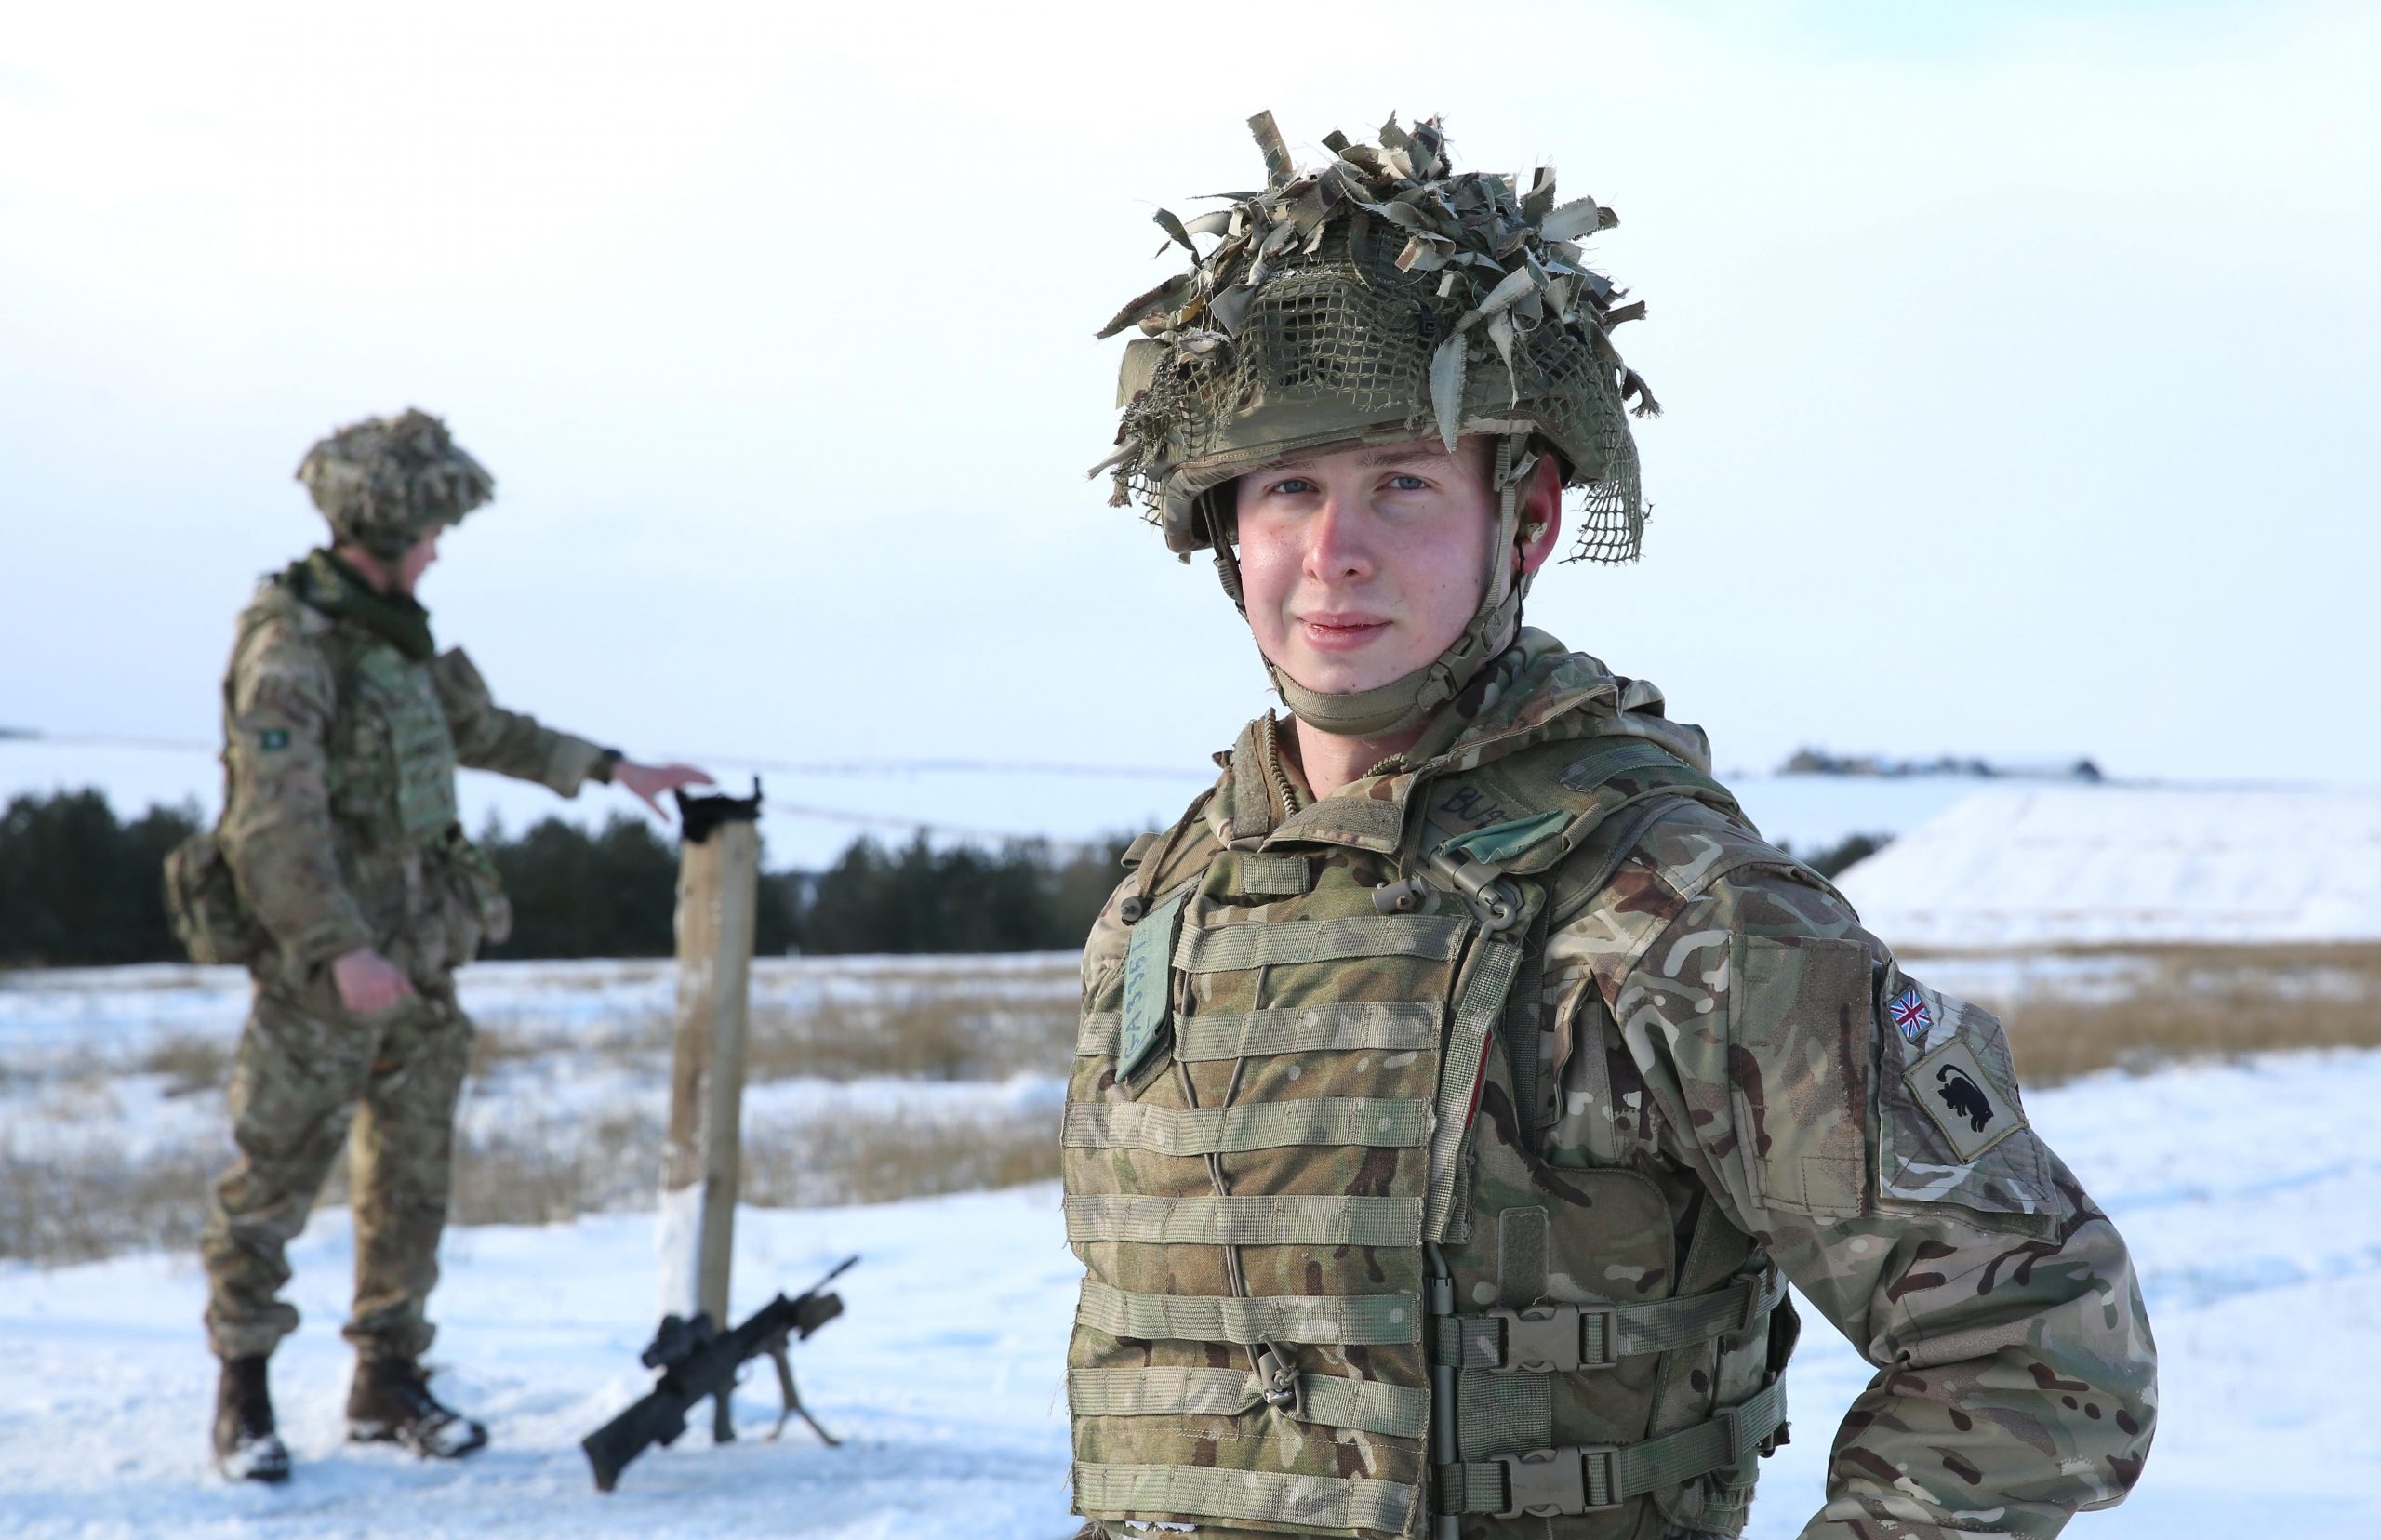 LCpl Mike Gater from Wakefield at Battle Hill Range